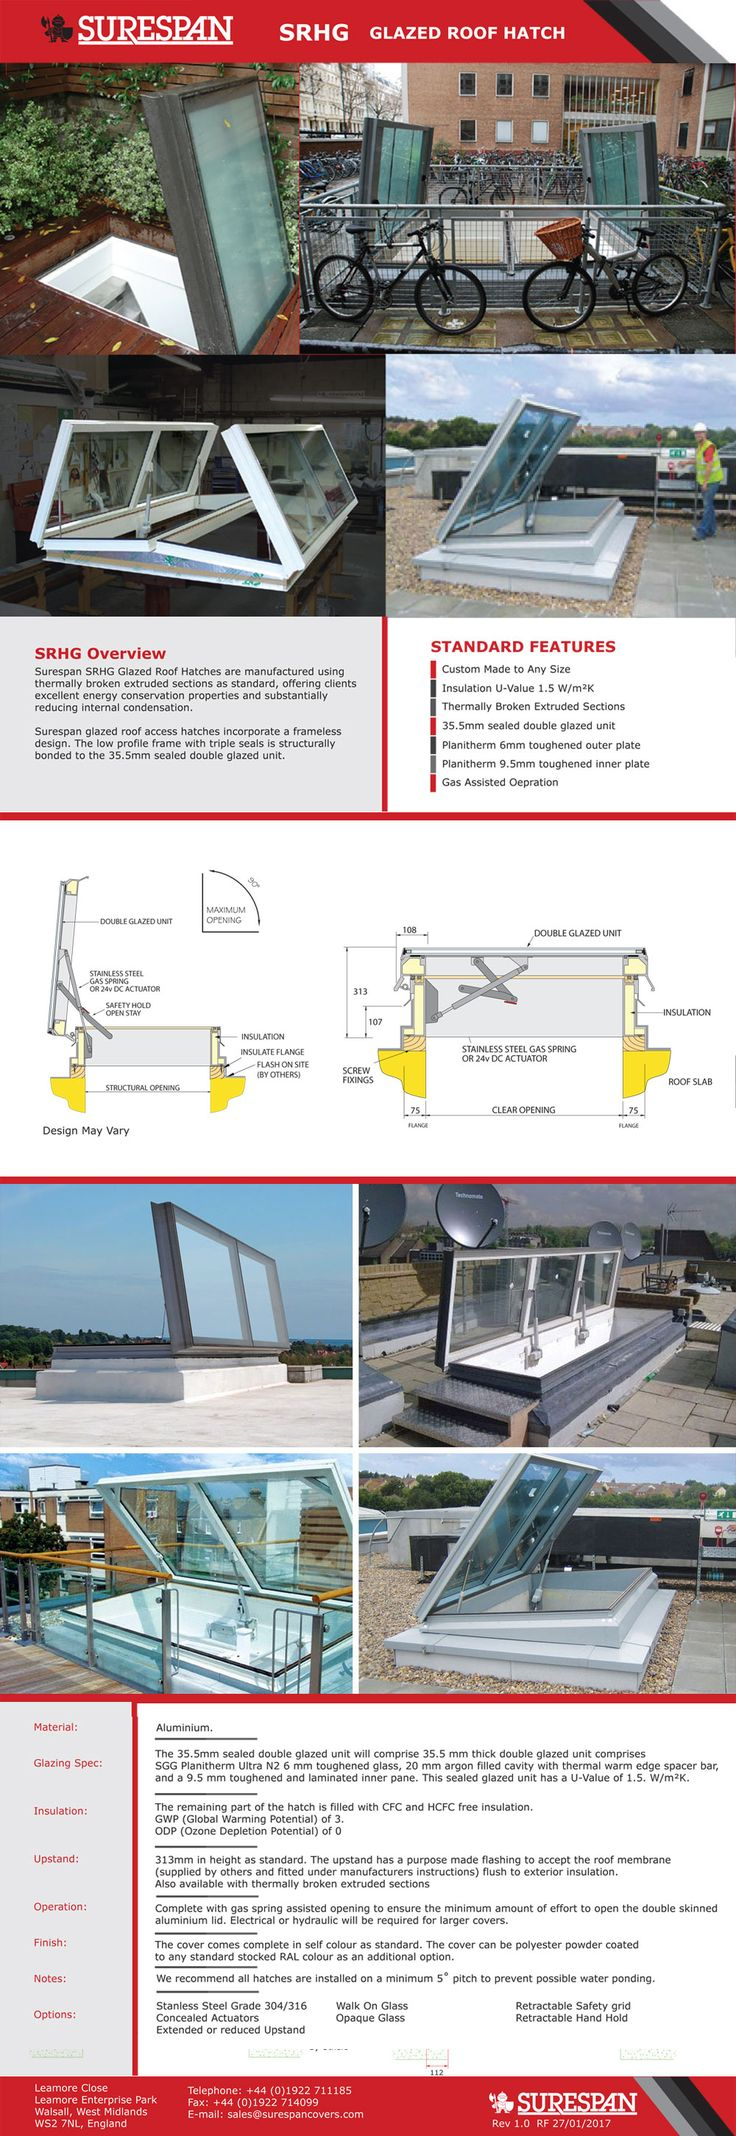 Home roof access glazed roof hatch glazed roof hatch - This Is What You Need To Know About Surespan Glazed Roof Access Hatches And Rooflights Http